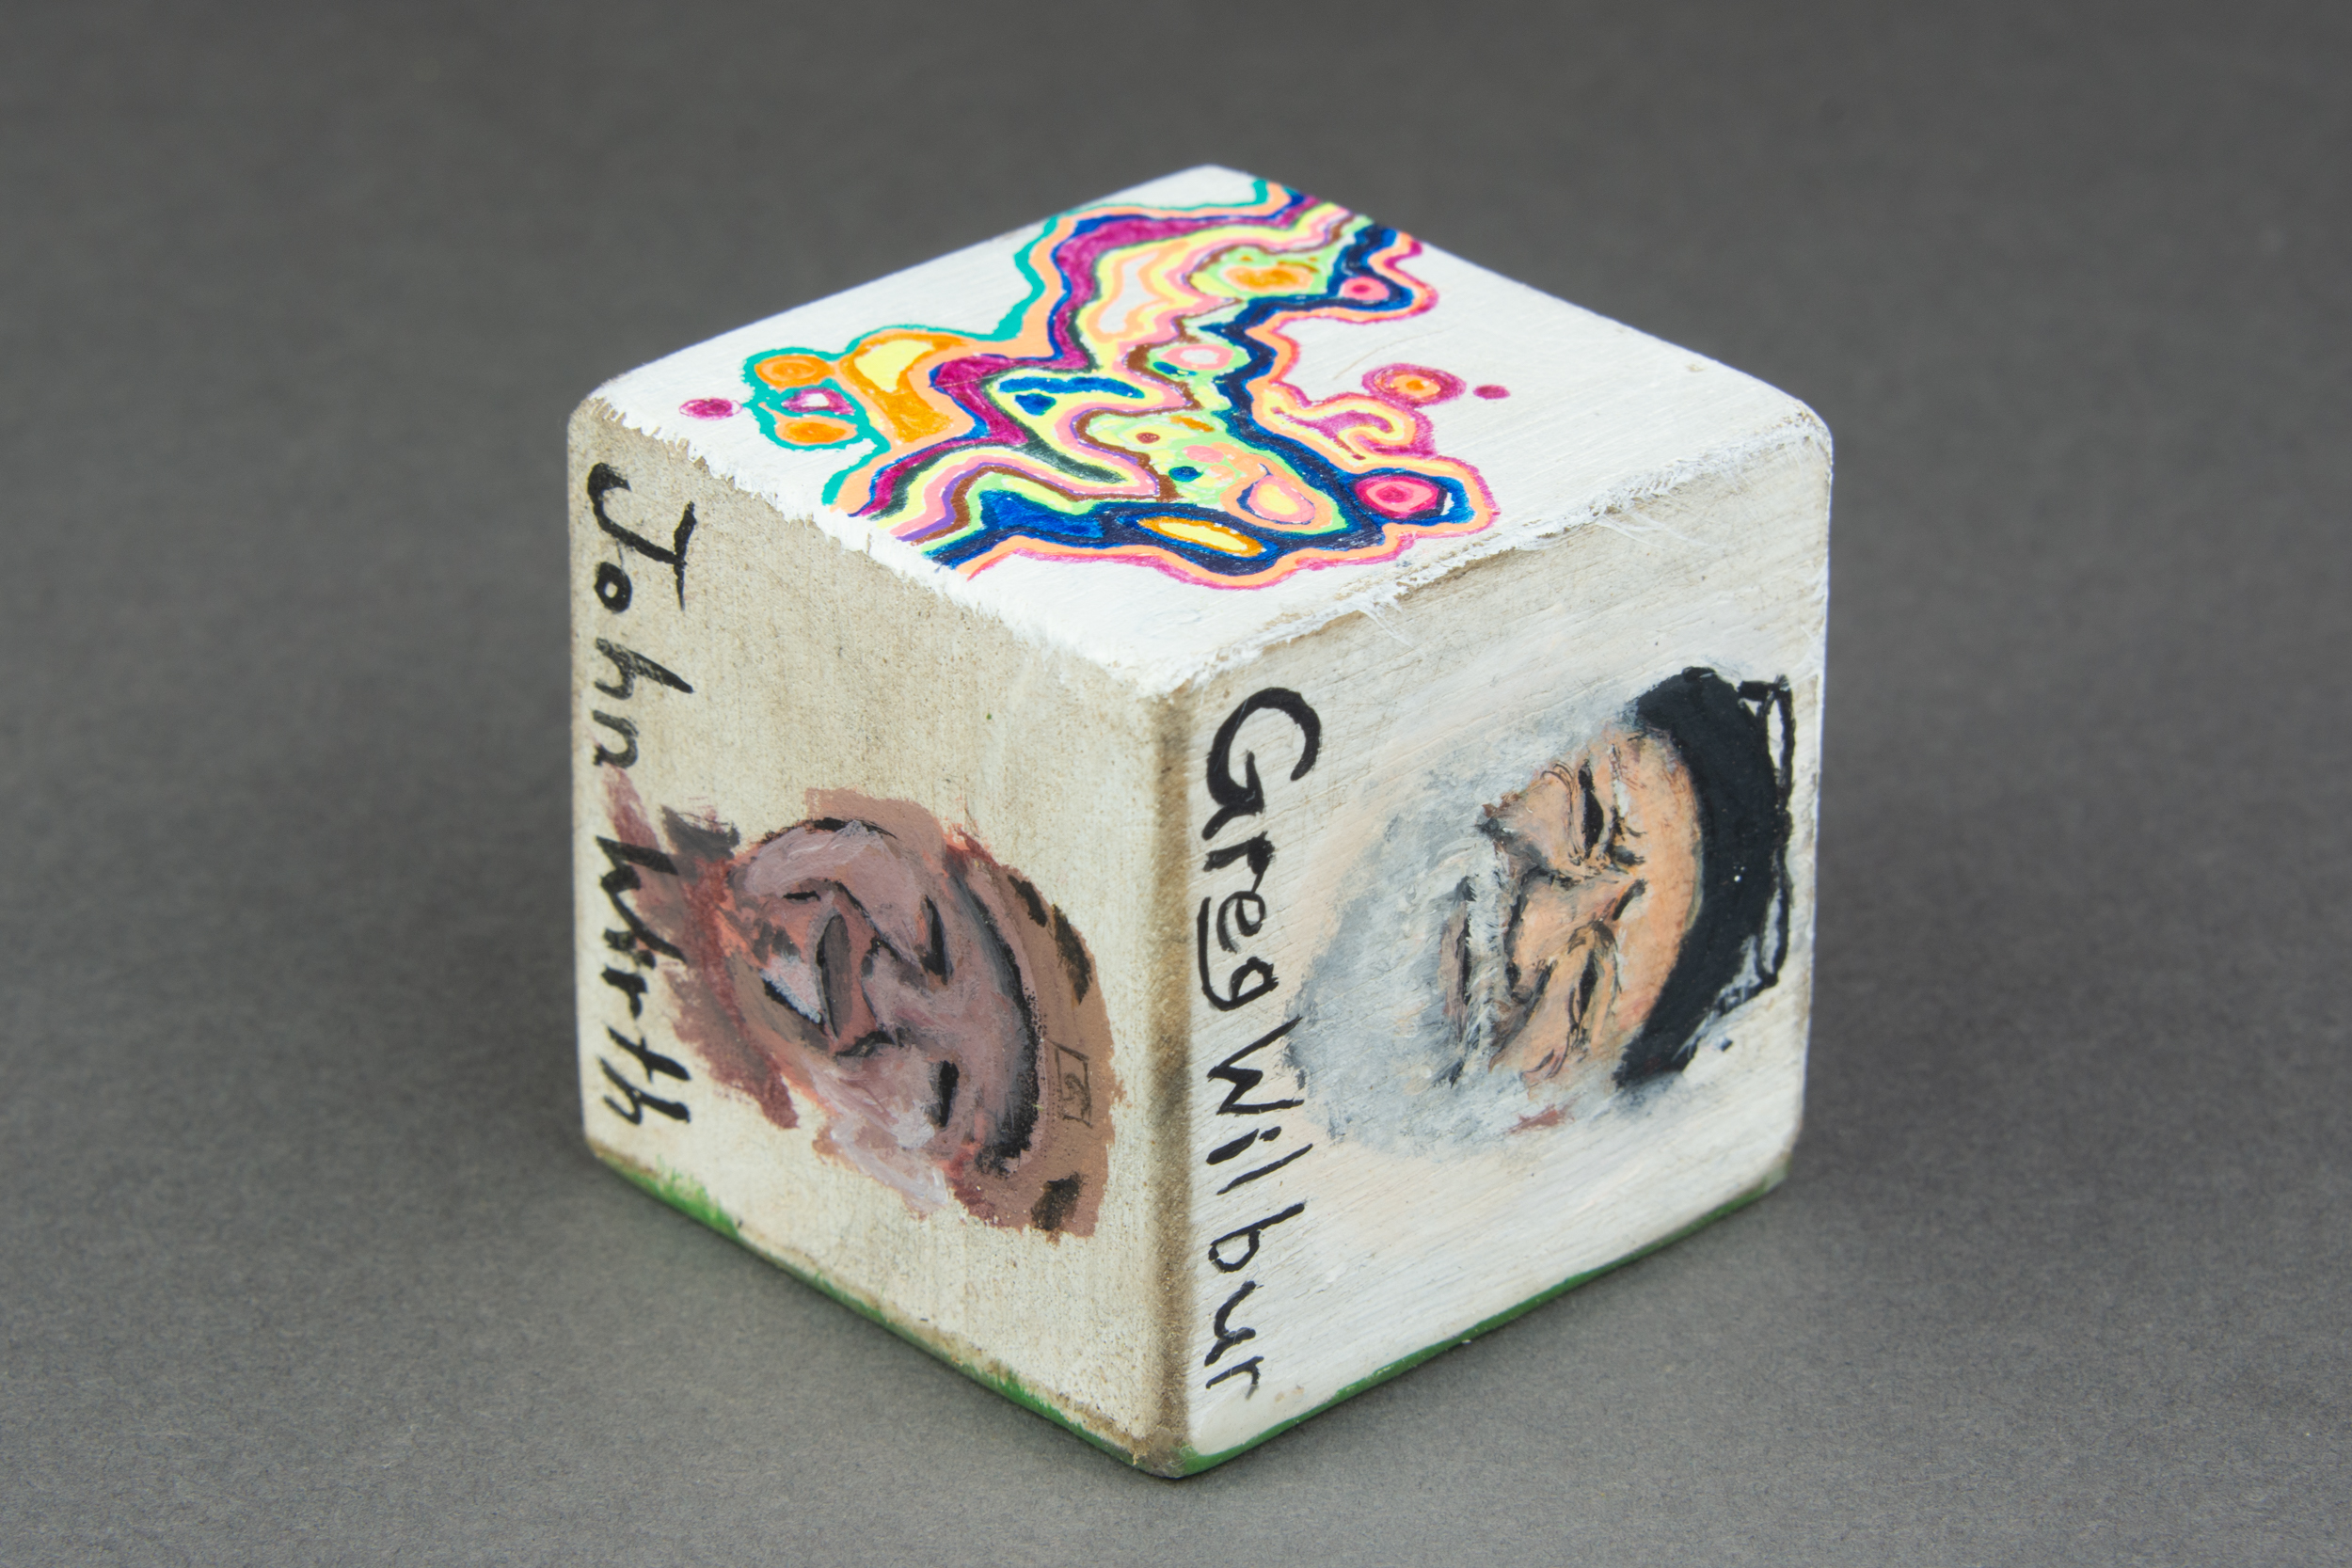 Cube for Greg and John